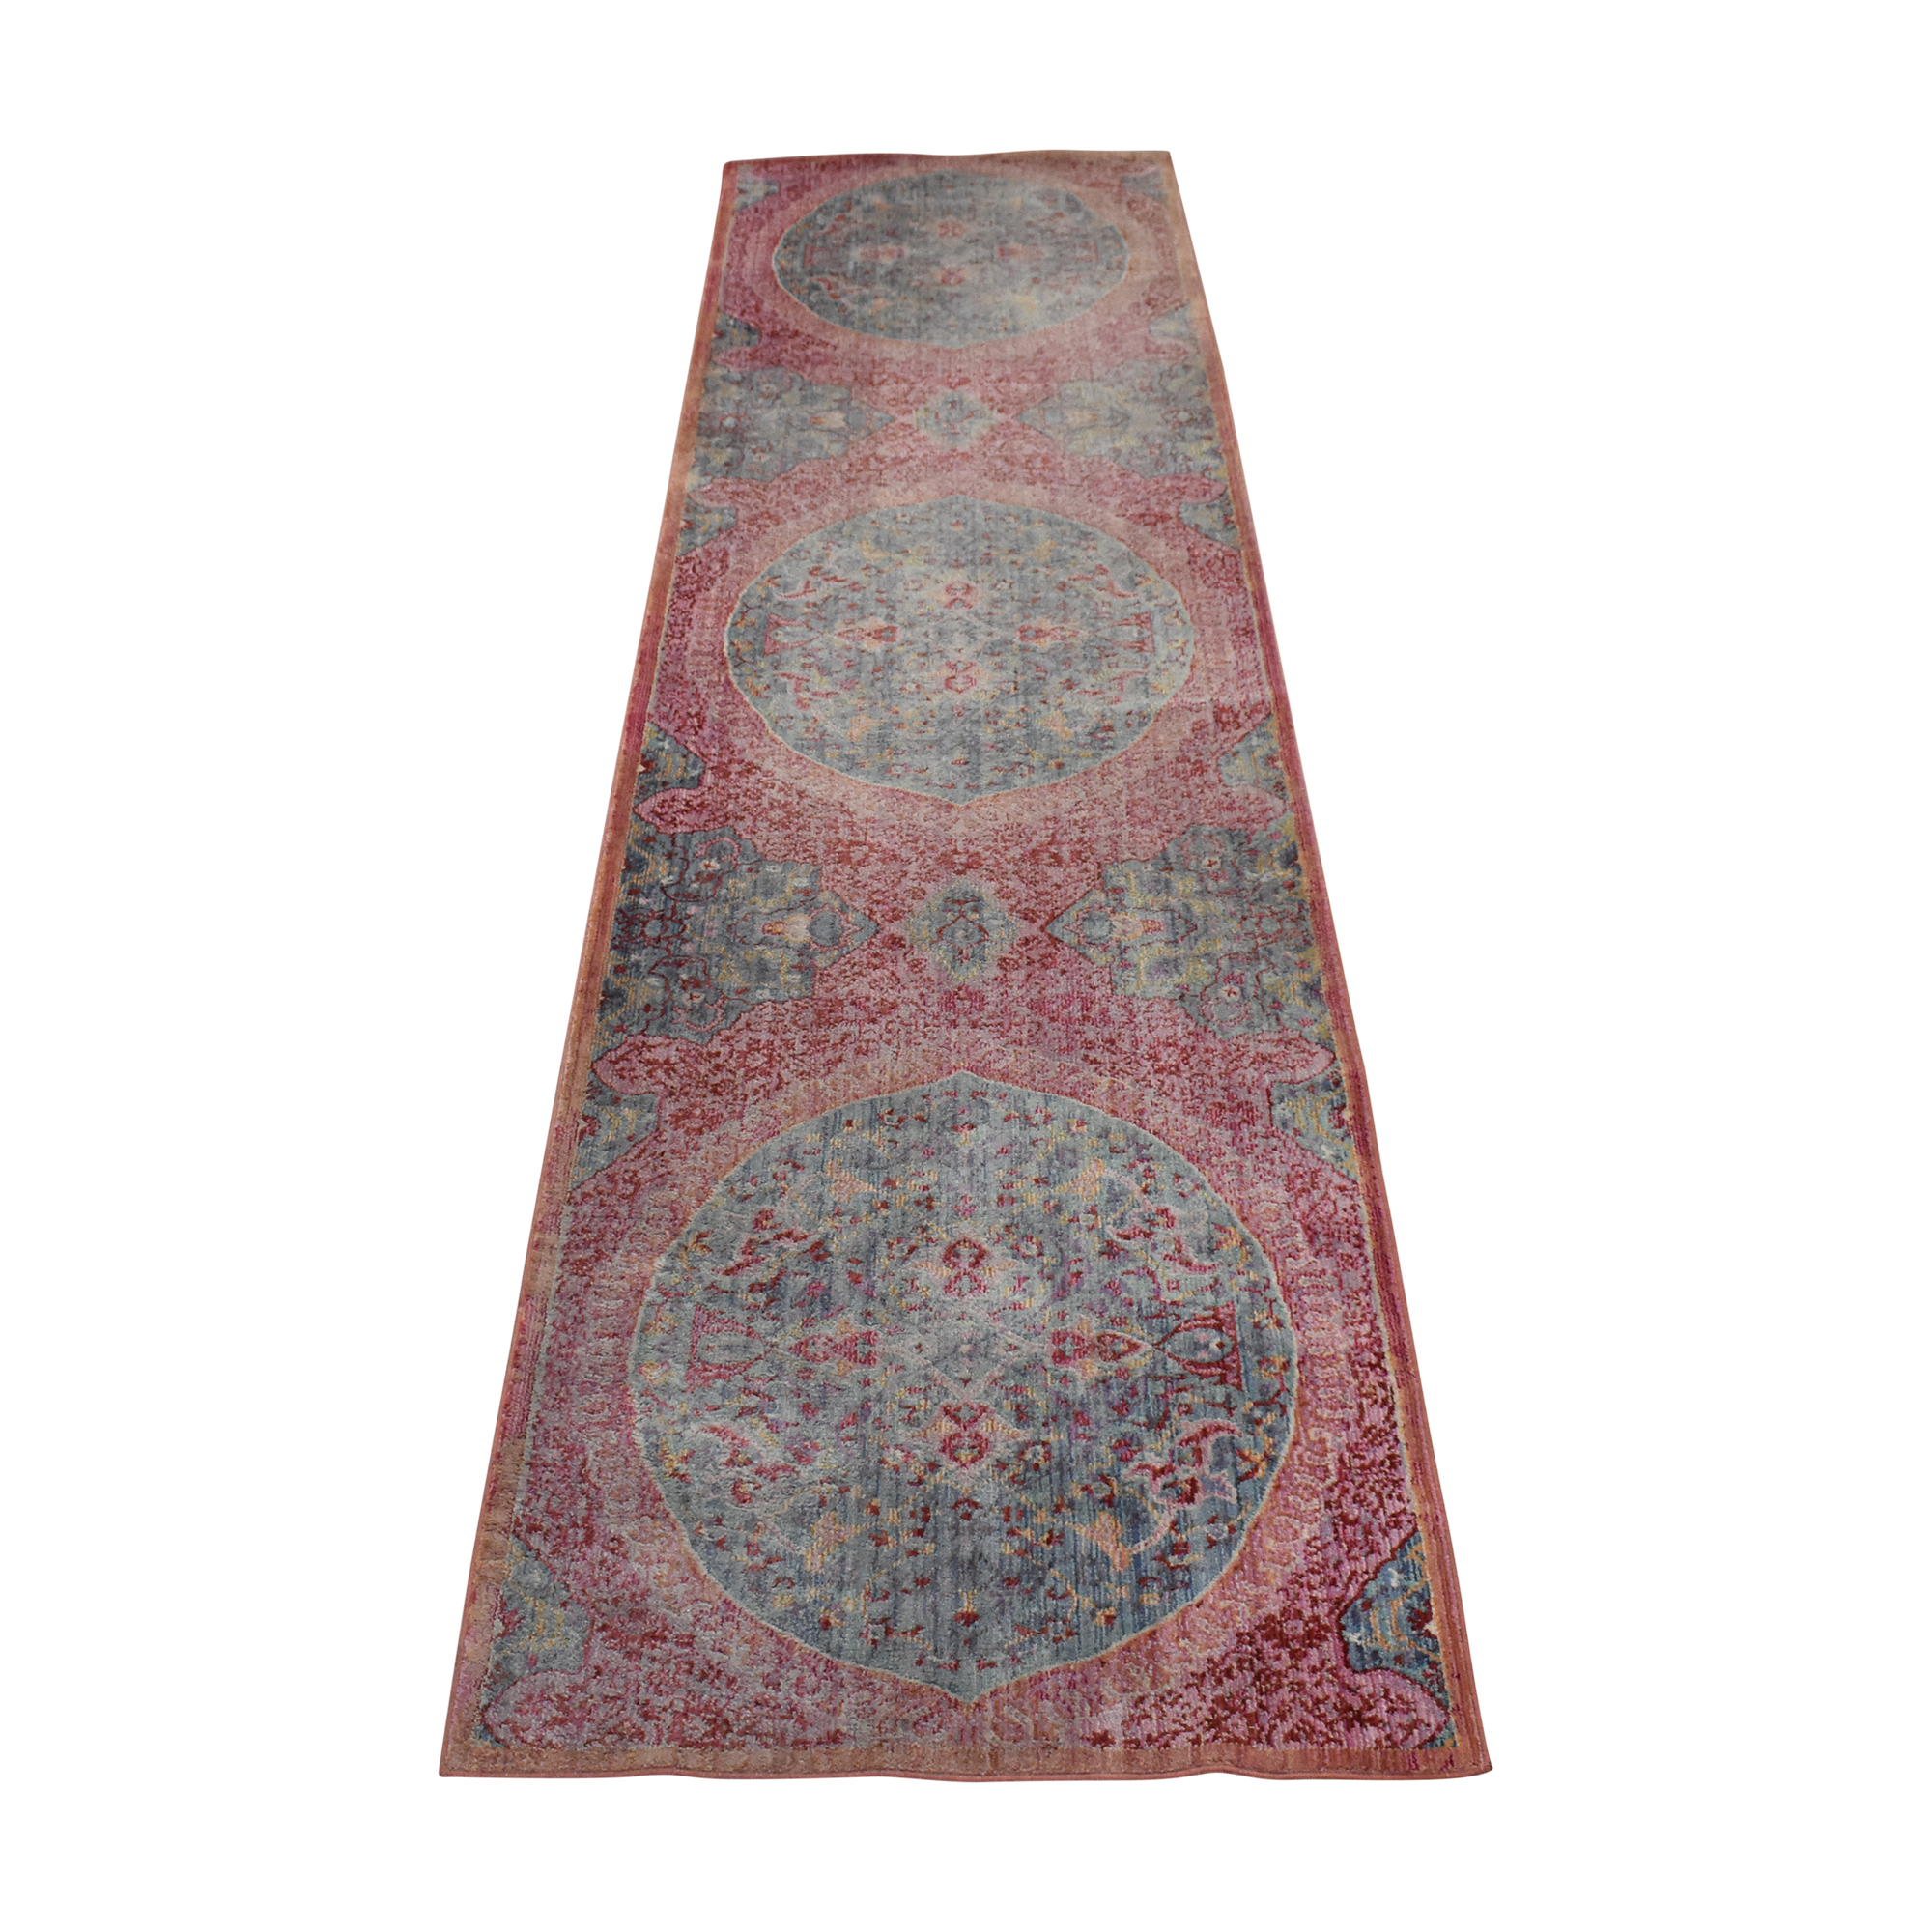 Safavieh Sutton Collection Runner Rug Safavieh